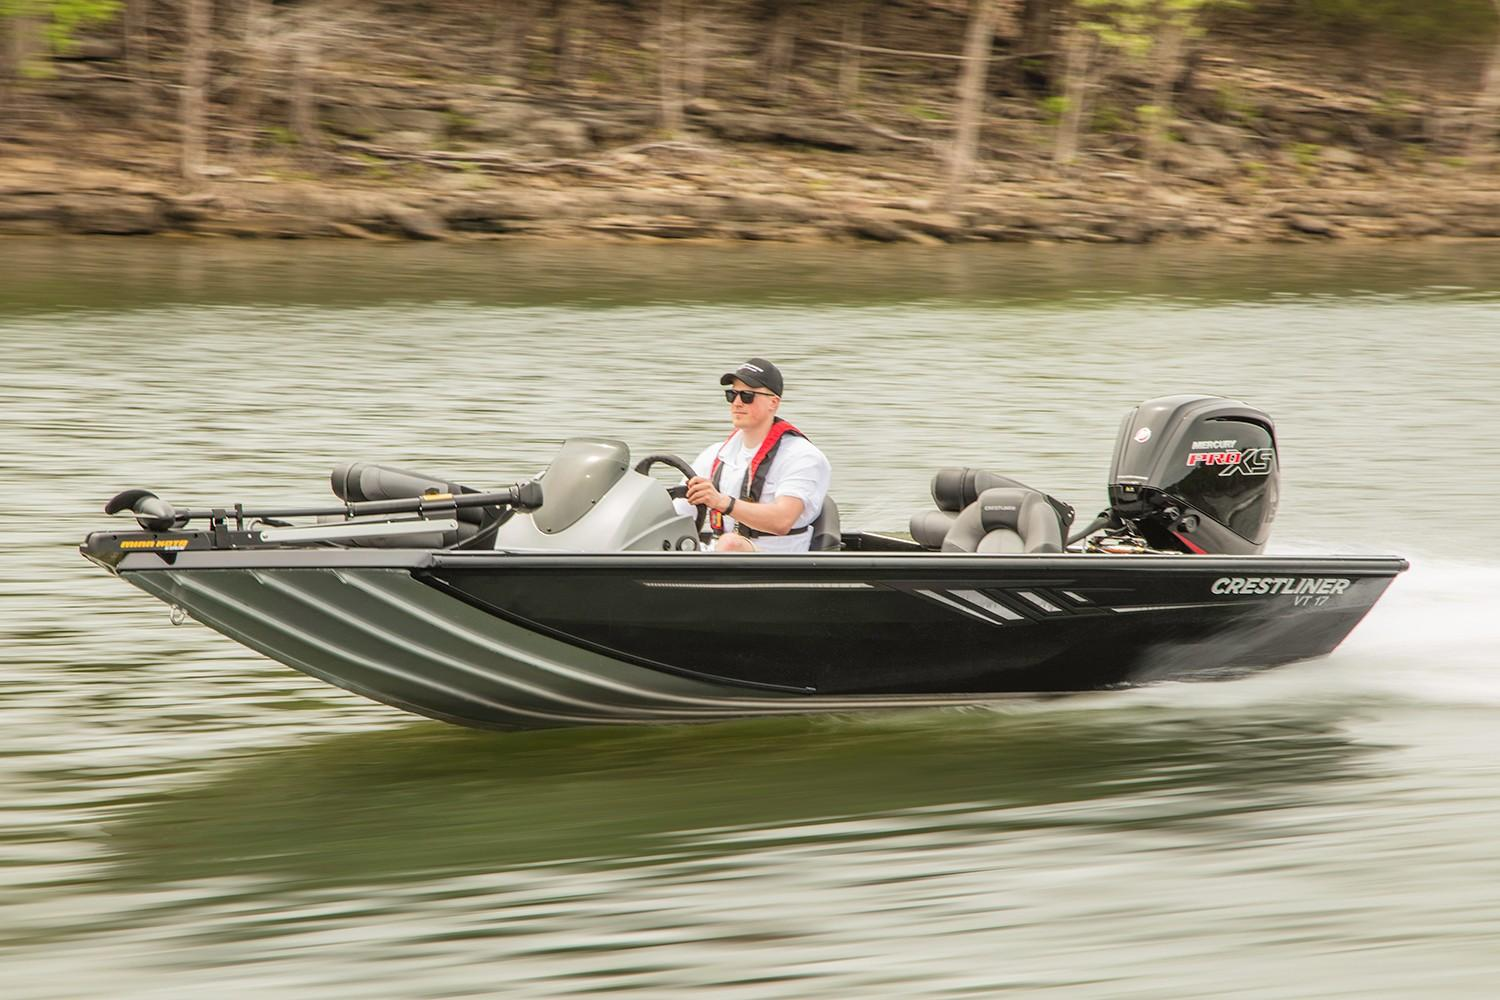 2019 Crestliner VT 17 in Cable, Wisconsin